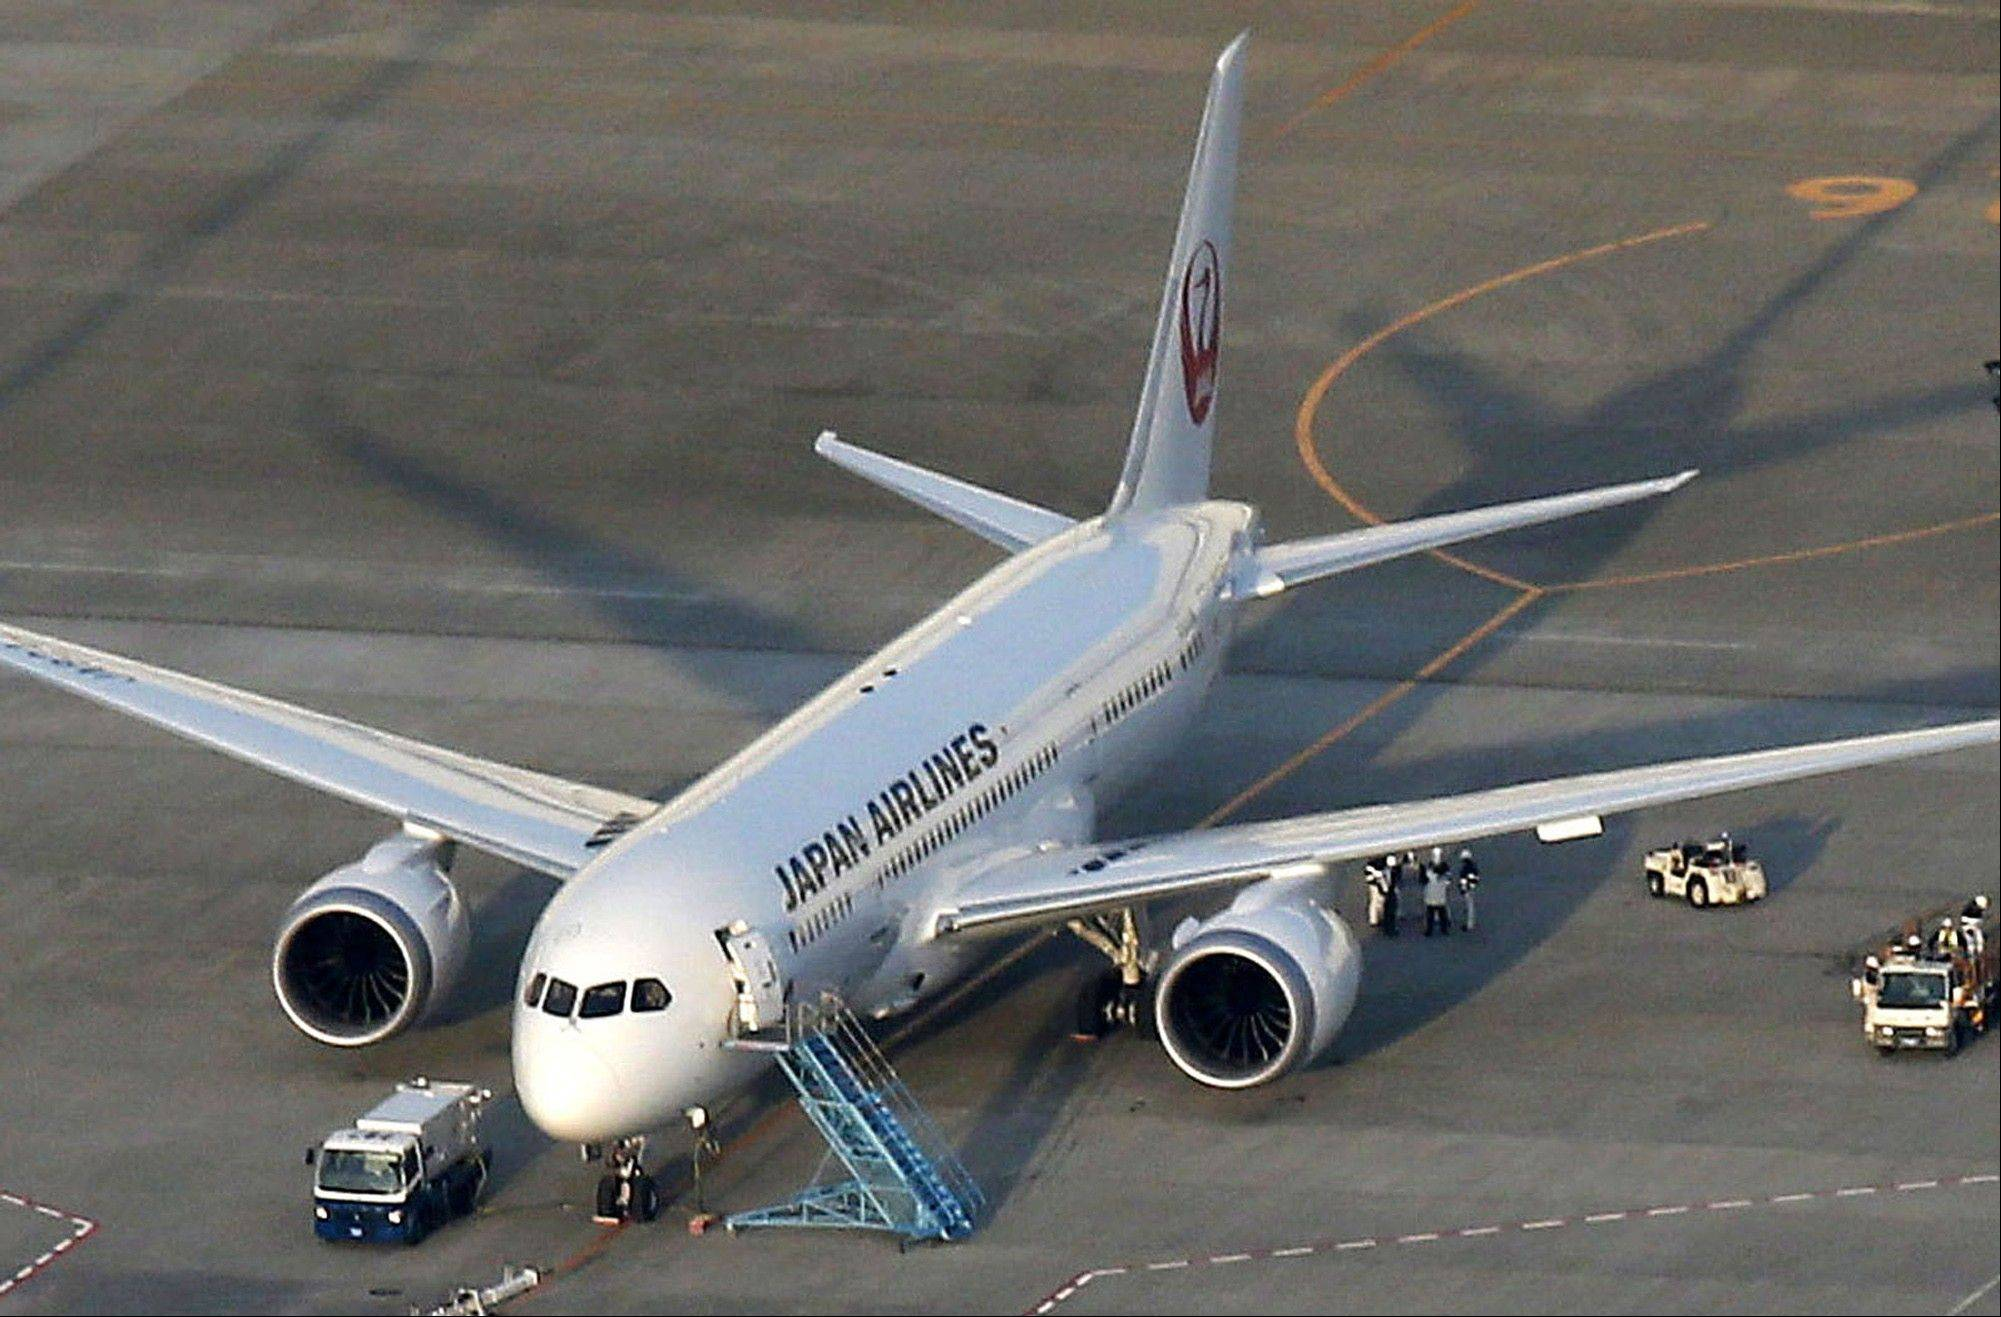 A Japan Airlines 787, from which fuel spilled at Boston's Logan International Airport last Tuesday, sits on the tarmac at Narita Airport in Narita, east of Tokyo, Sunday. Narita airport officials said JAL reported a 100-liter fuel leak from a filler on the 787 during inspection following recent spate of problems.